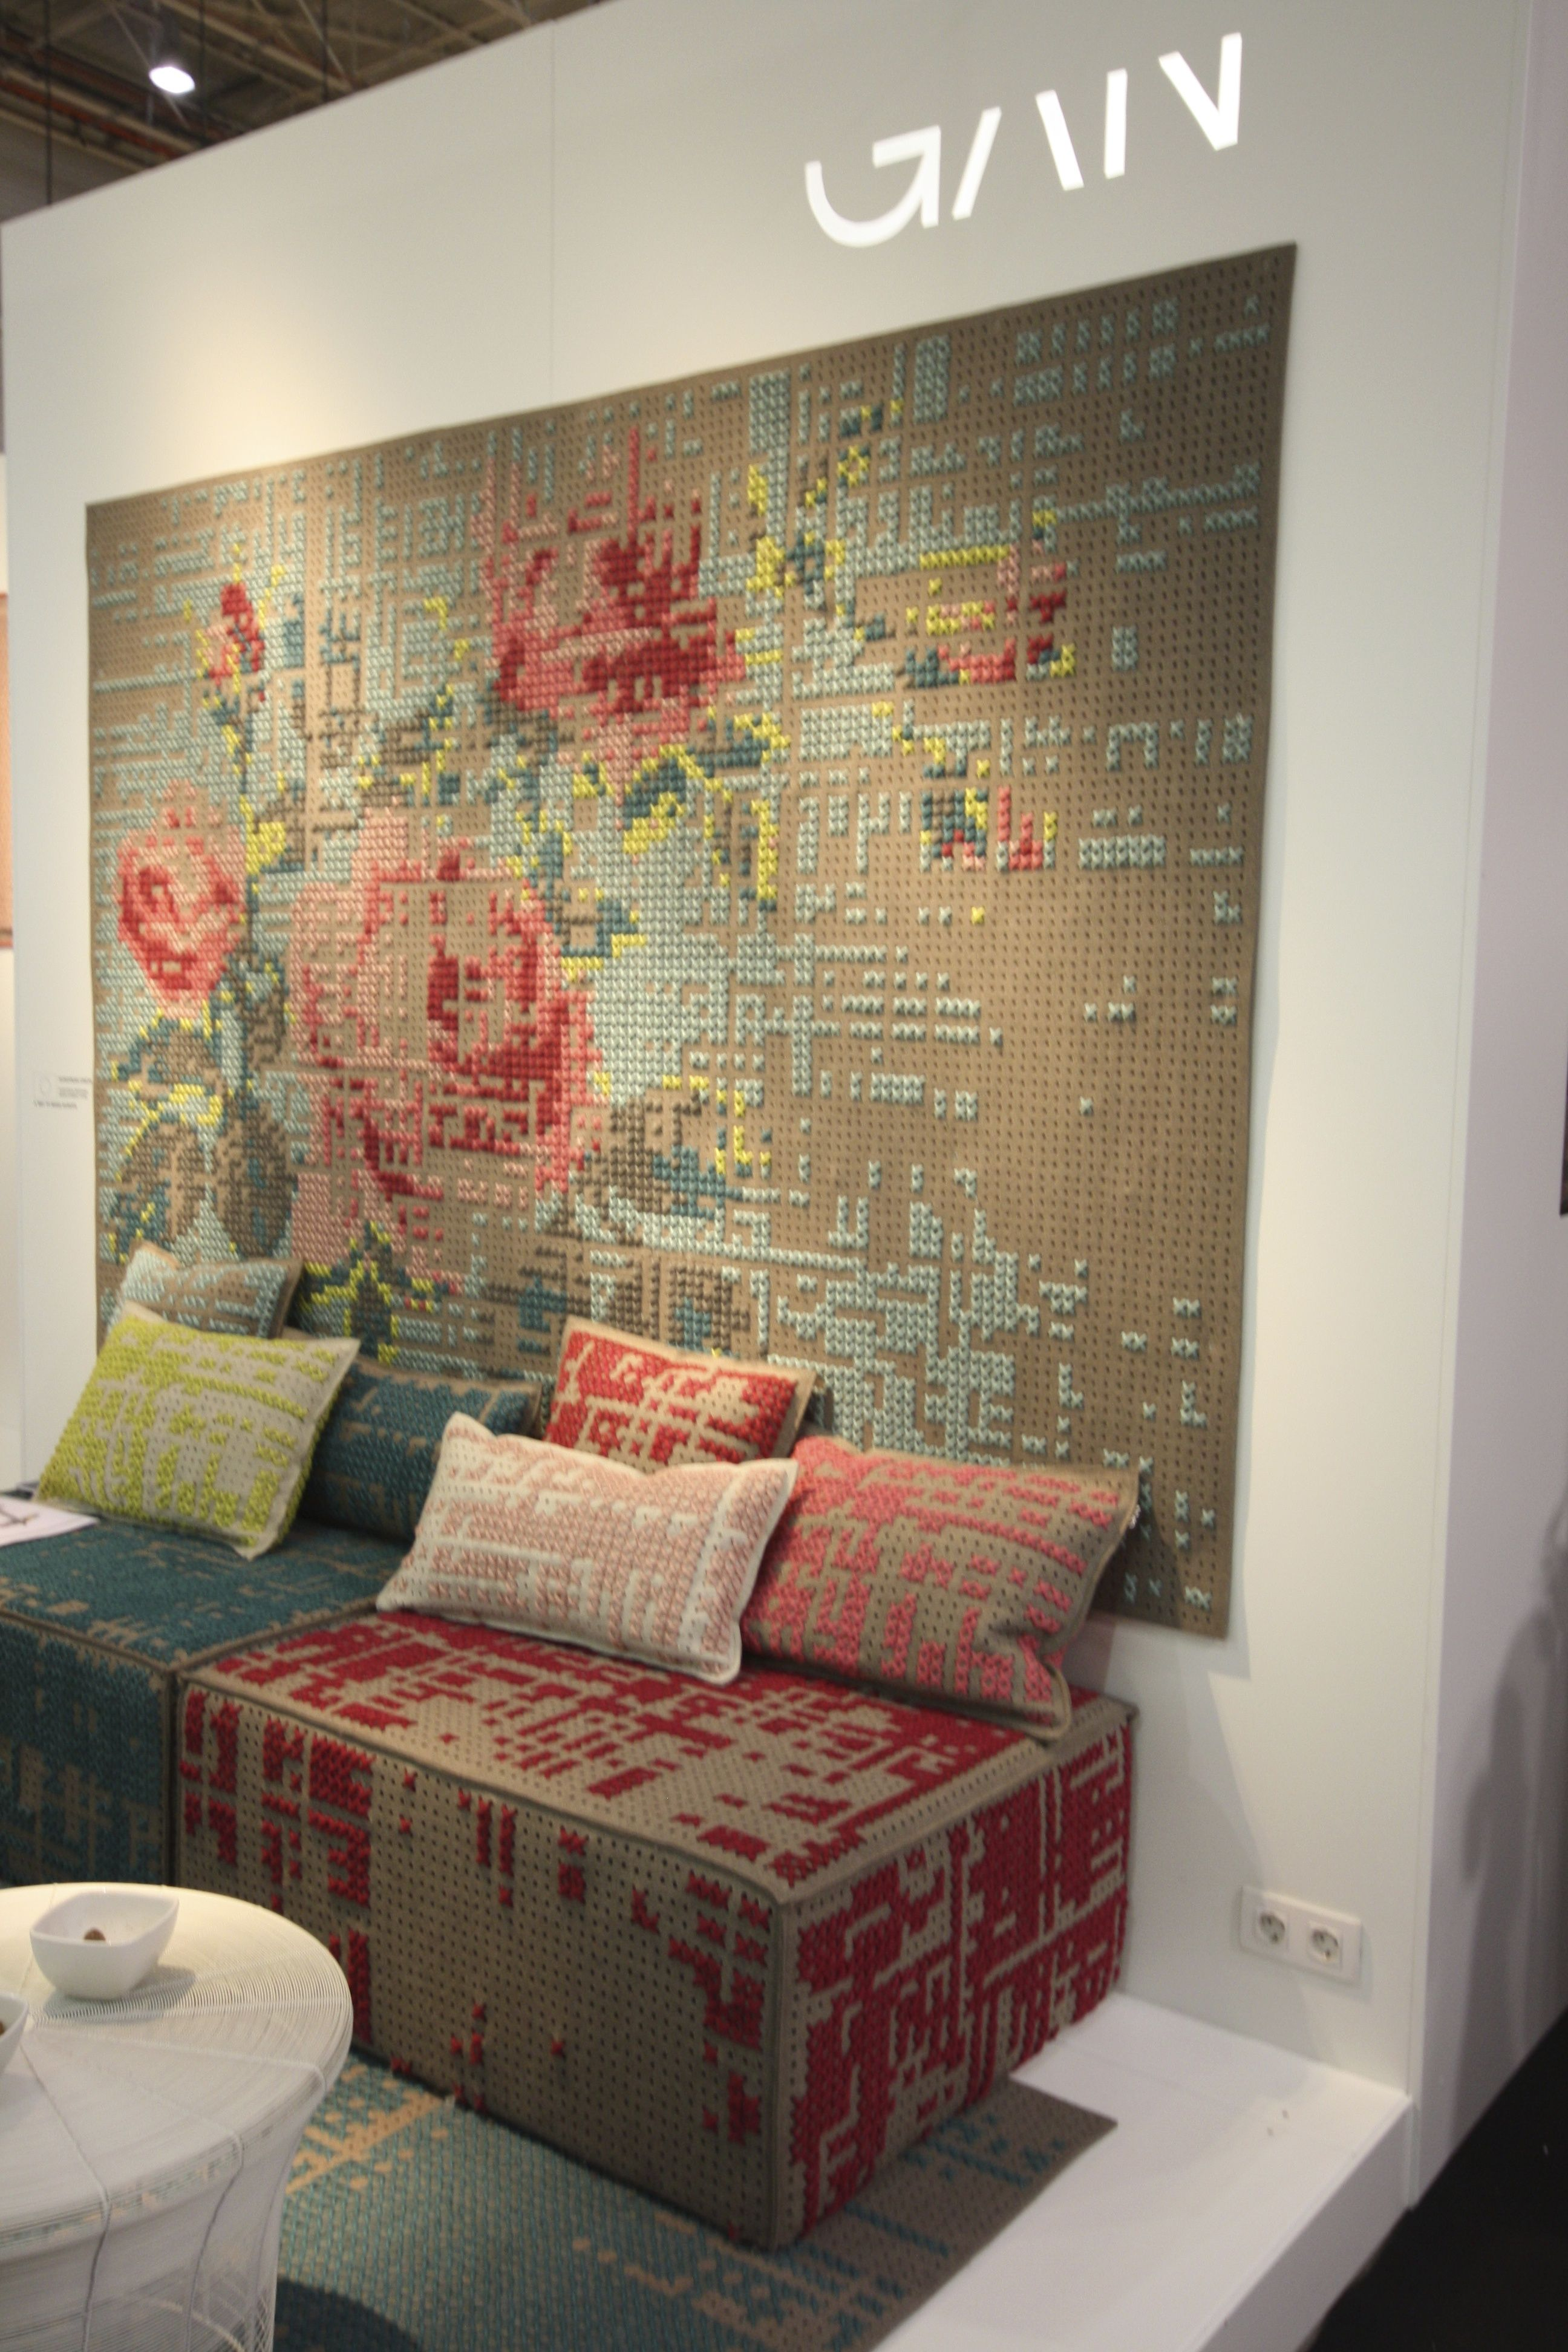 Maison et objet i don 39 t know if i want to something this for Cross stitch wall mural